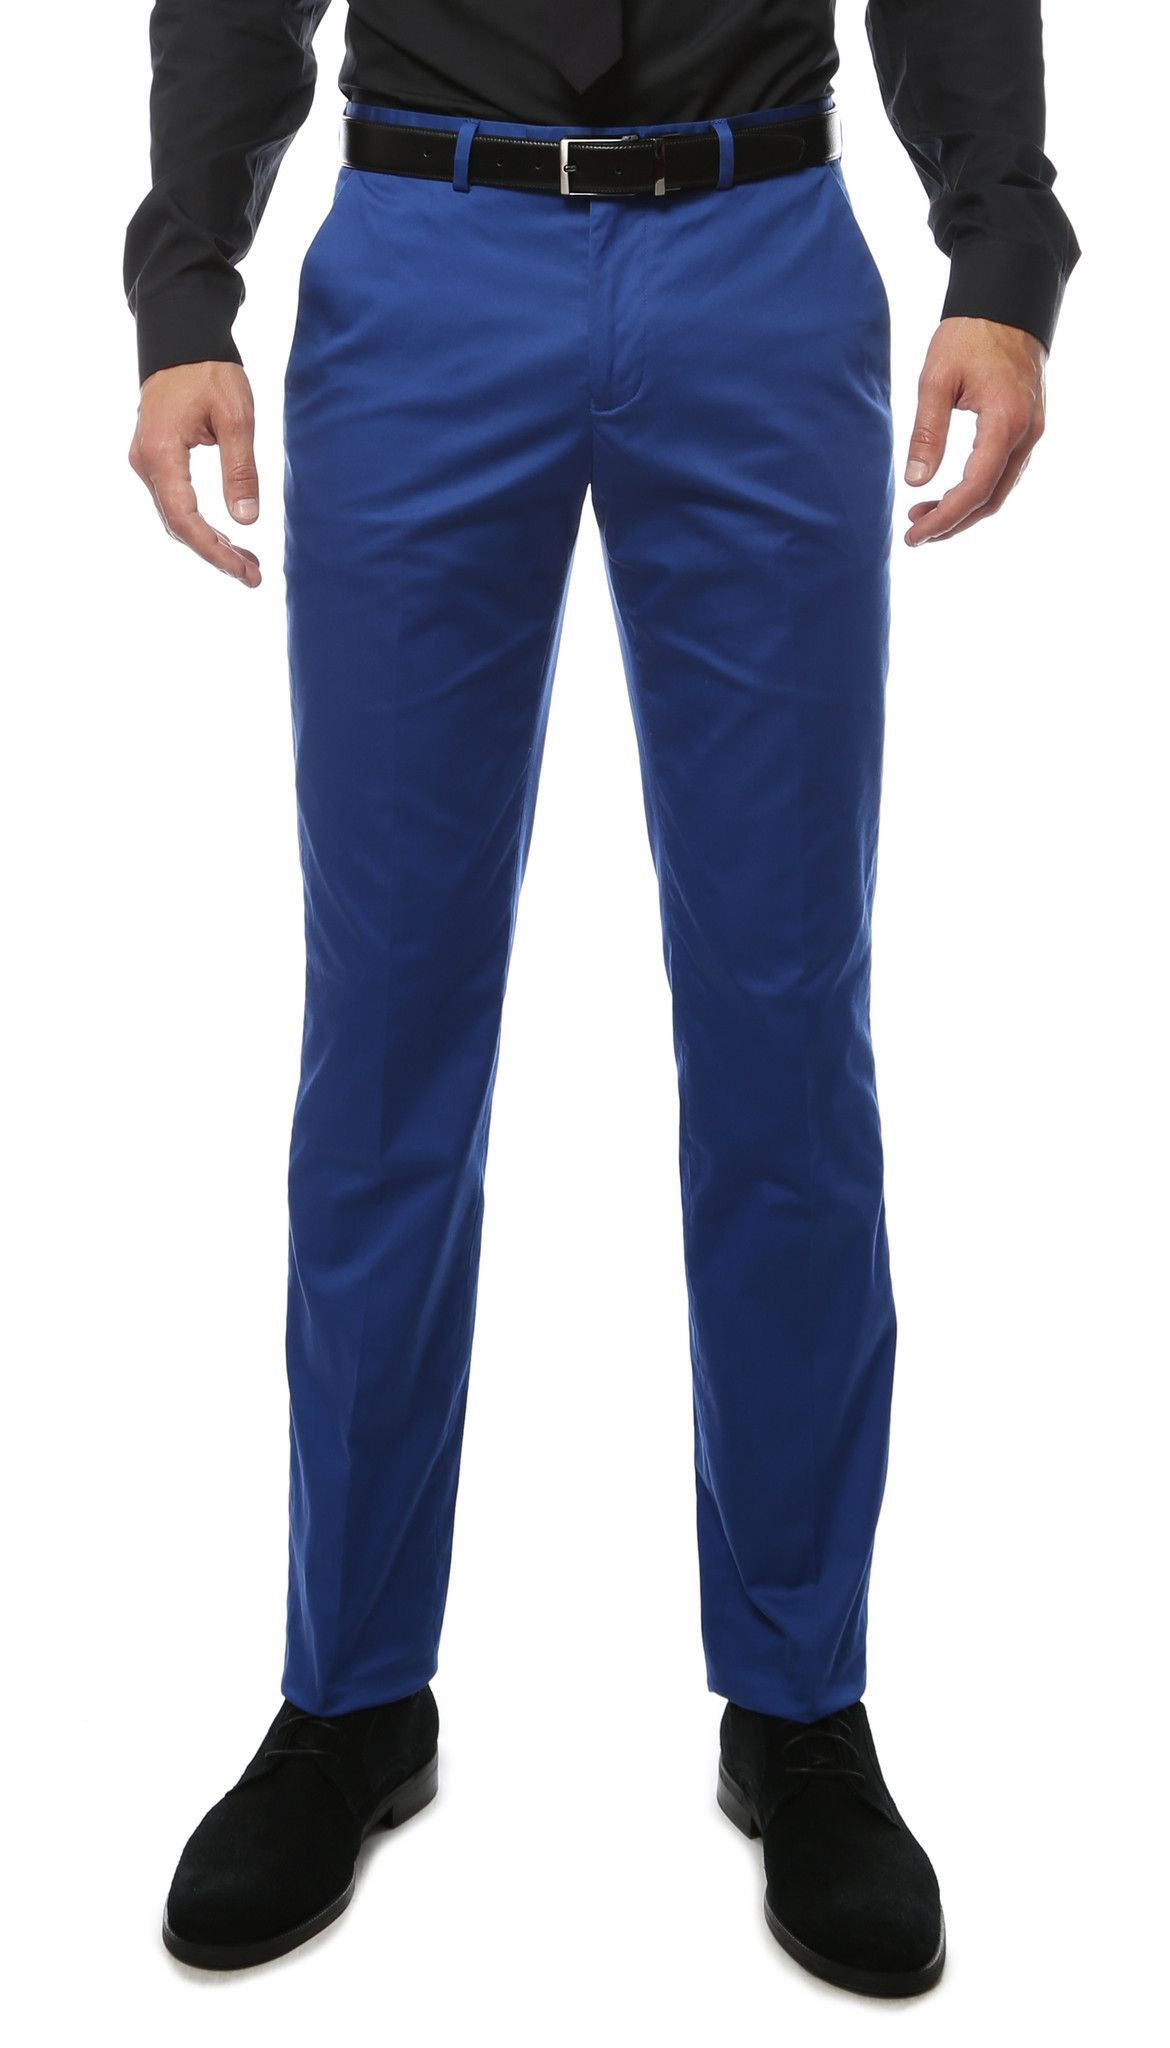 e89a64fdb8716f Zonettie Kilo Royal Blue Straight Leg Chino Pants | mens fashion ...